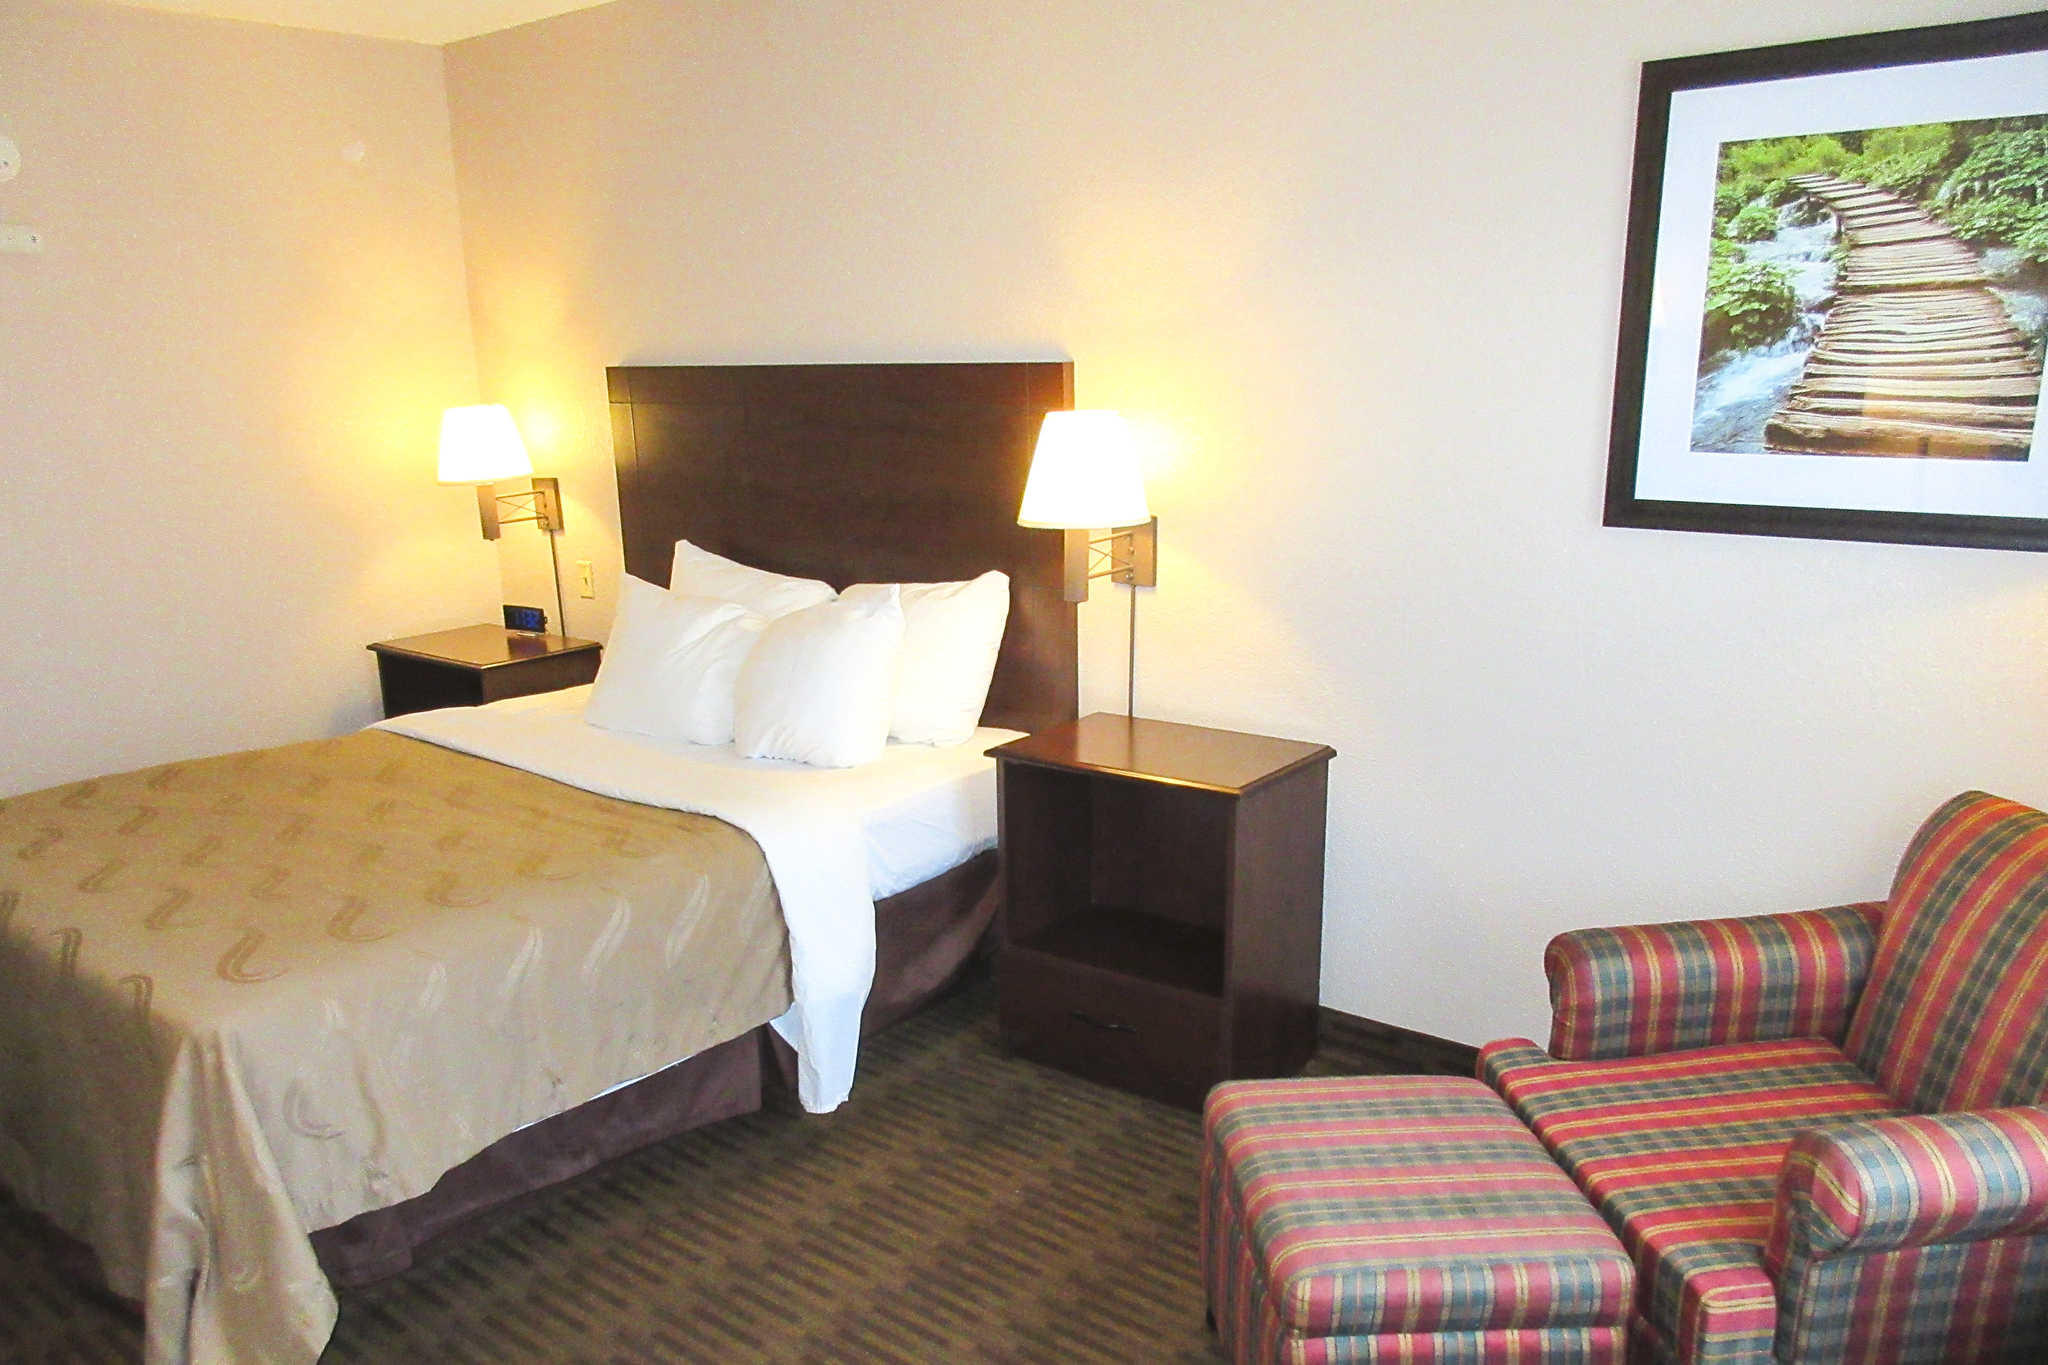 Quality Inn & Suites Lawrence - University Area image 3